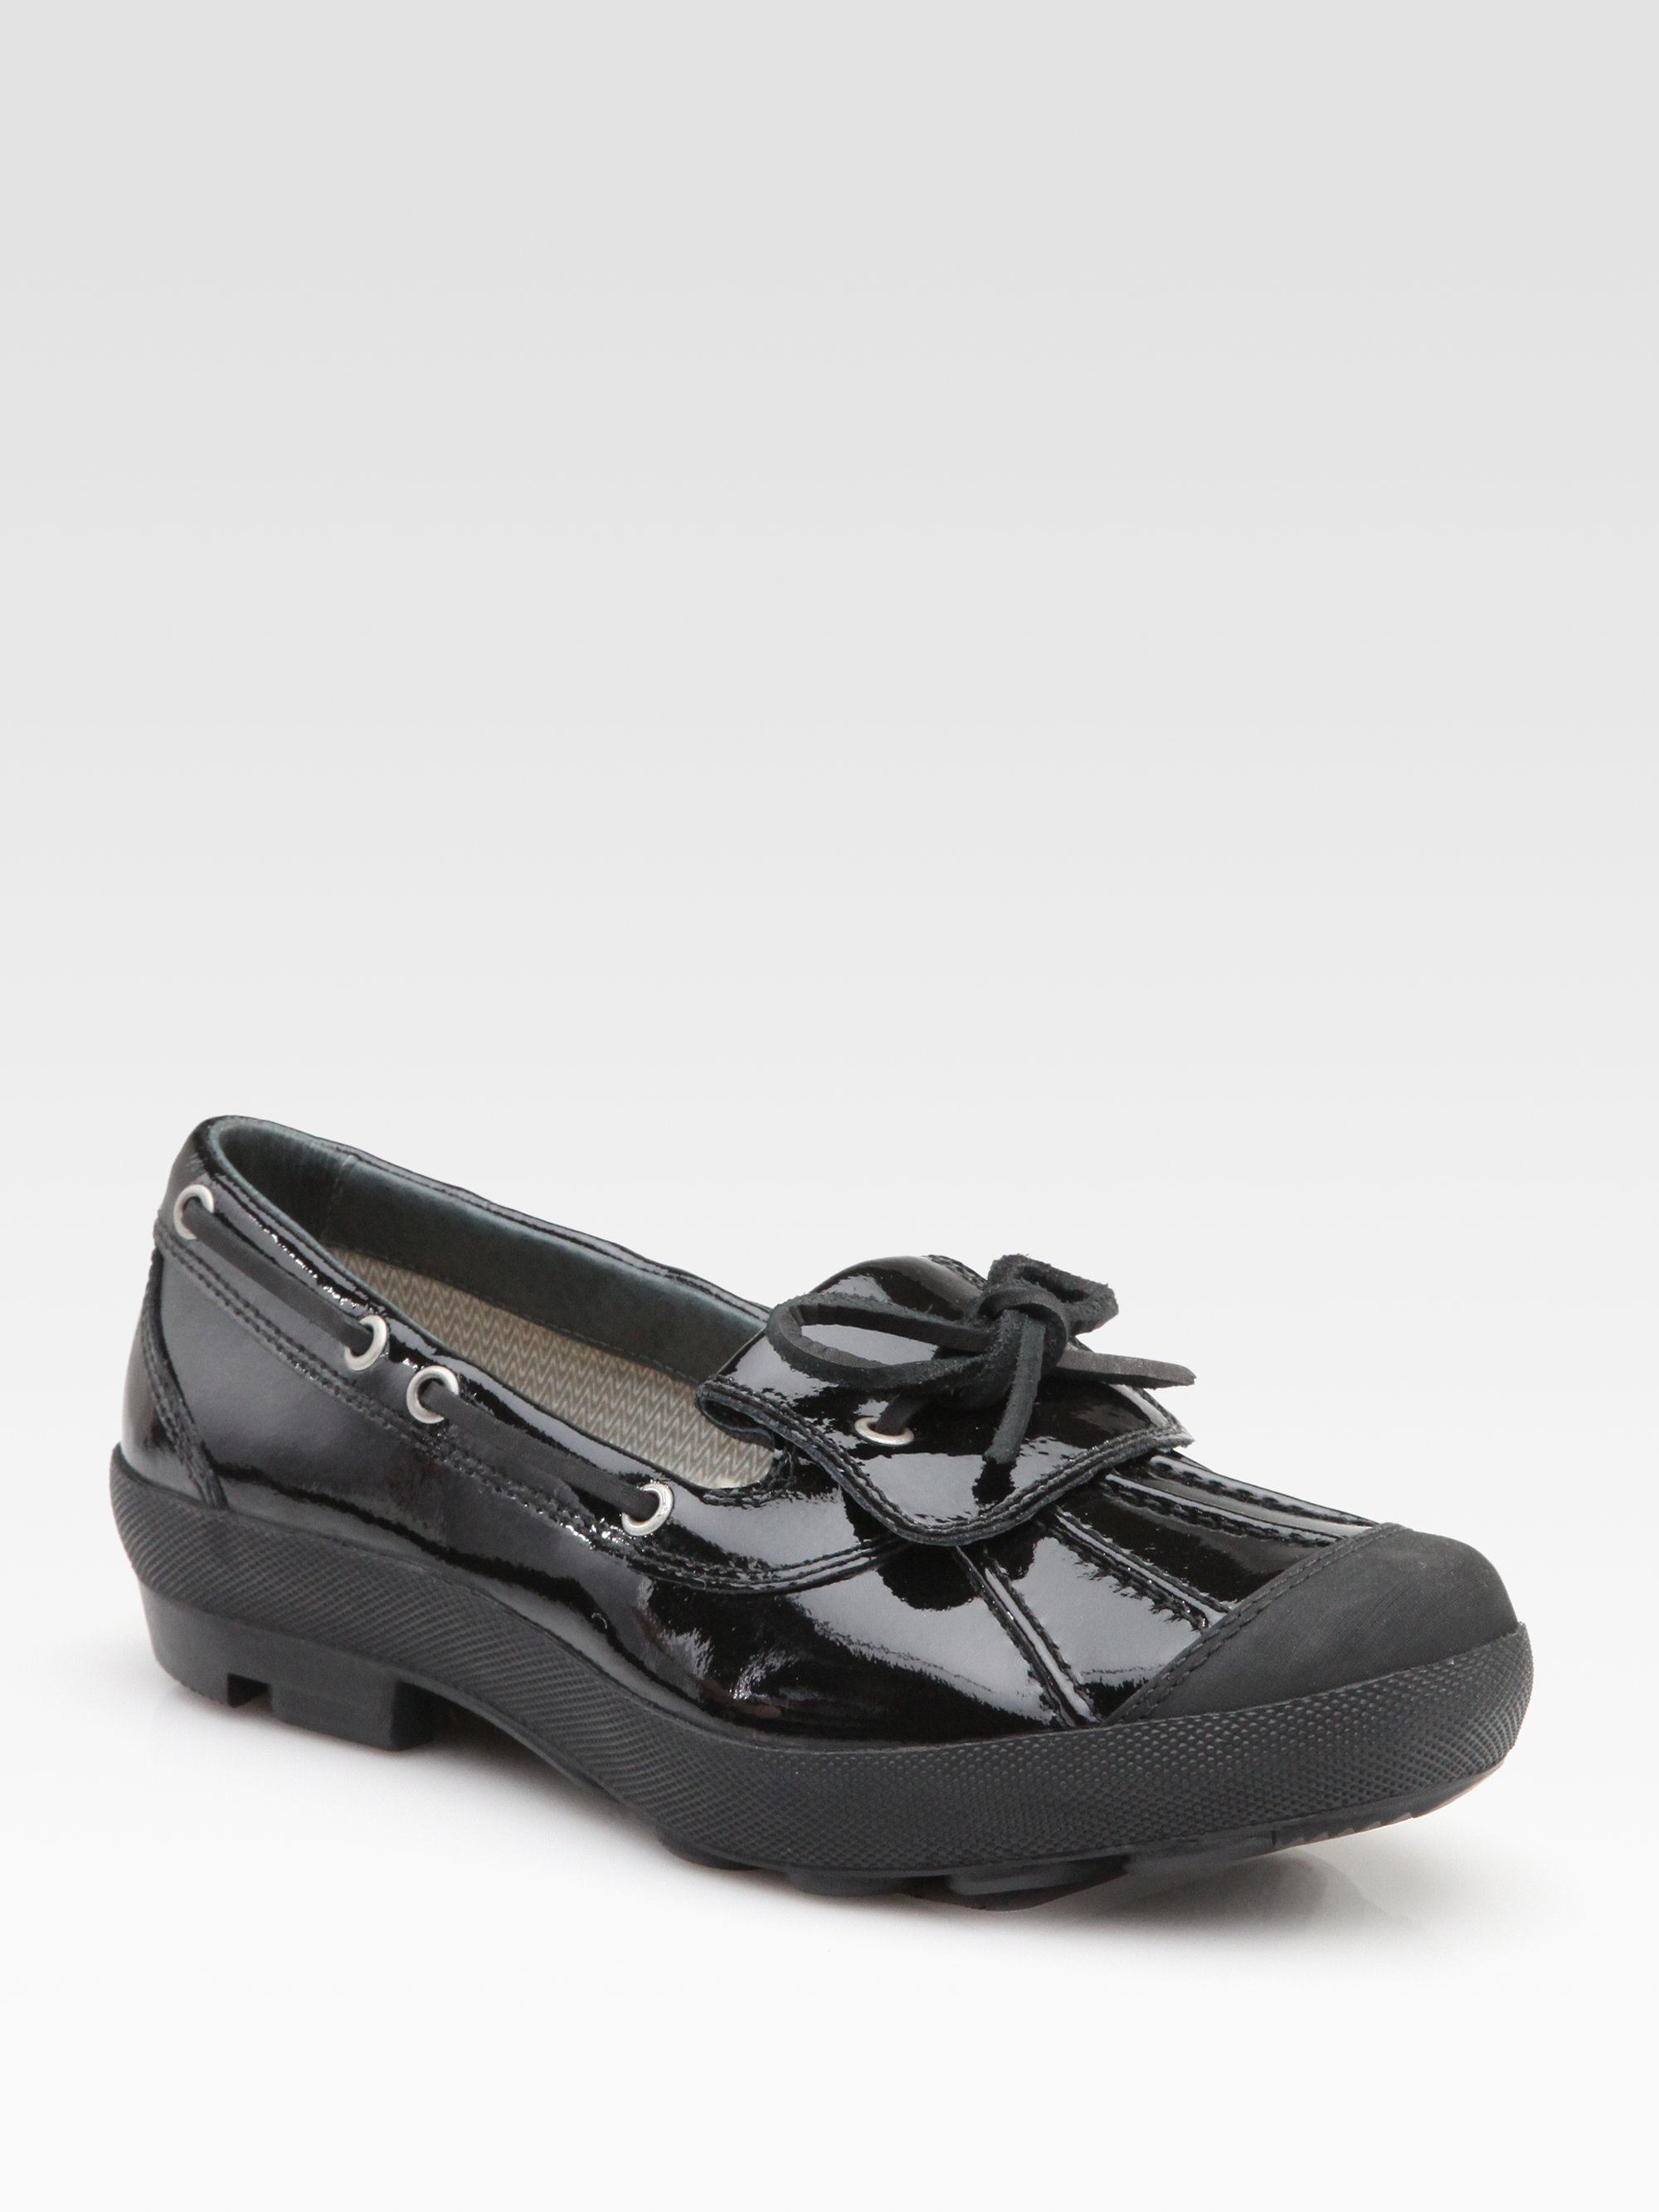 Lyst Ugg Ashdale Patent Leather Rain Shoes In Black